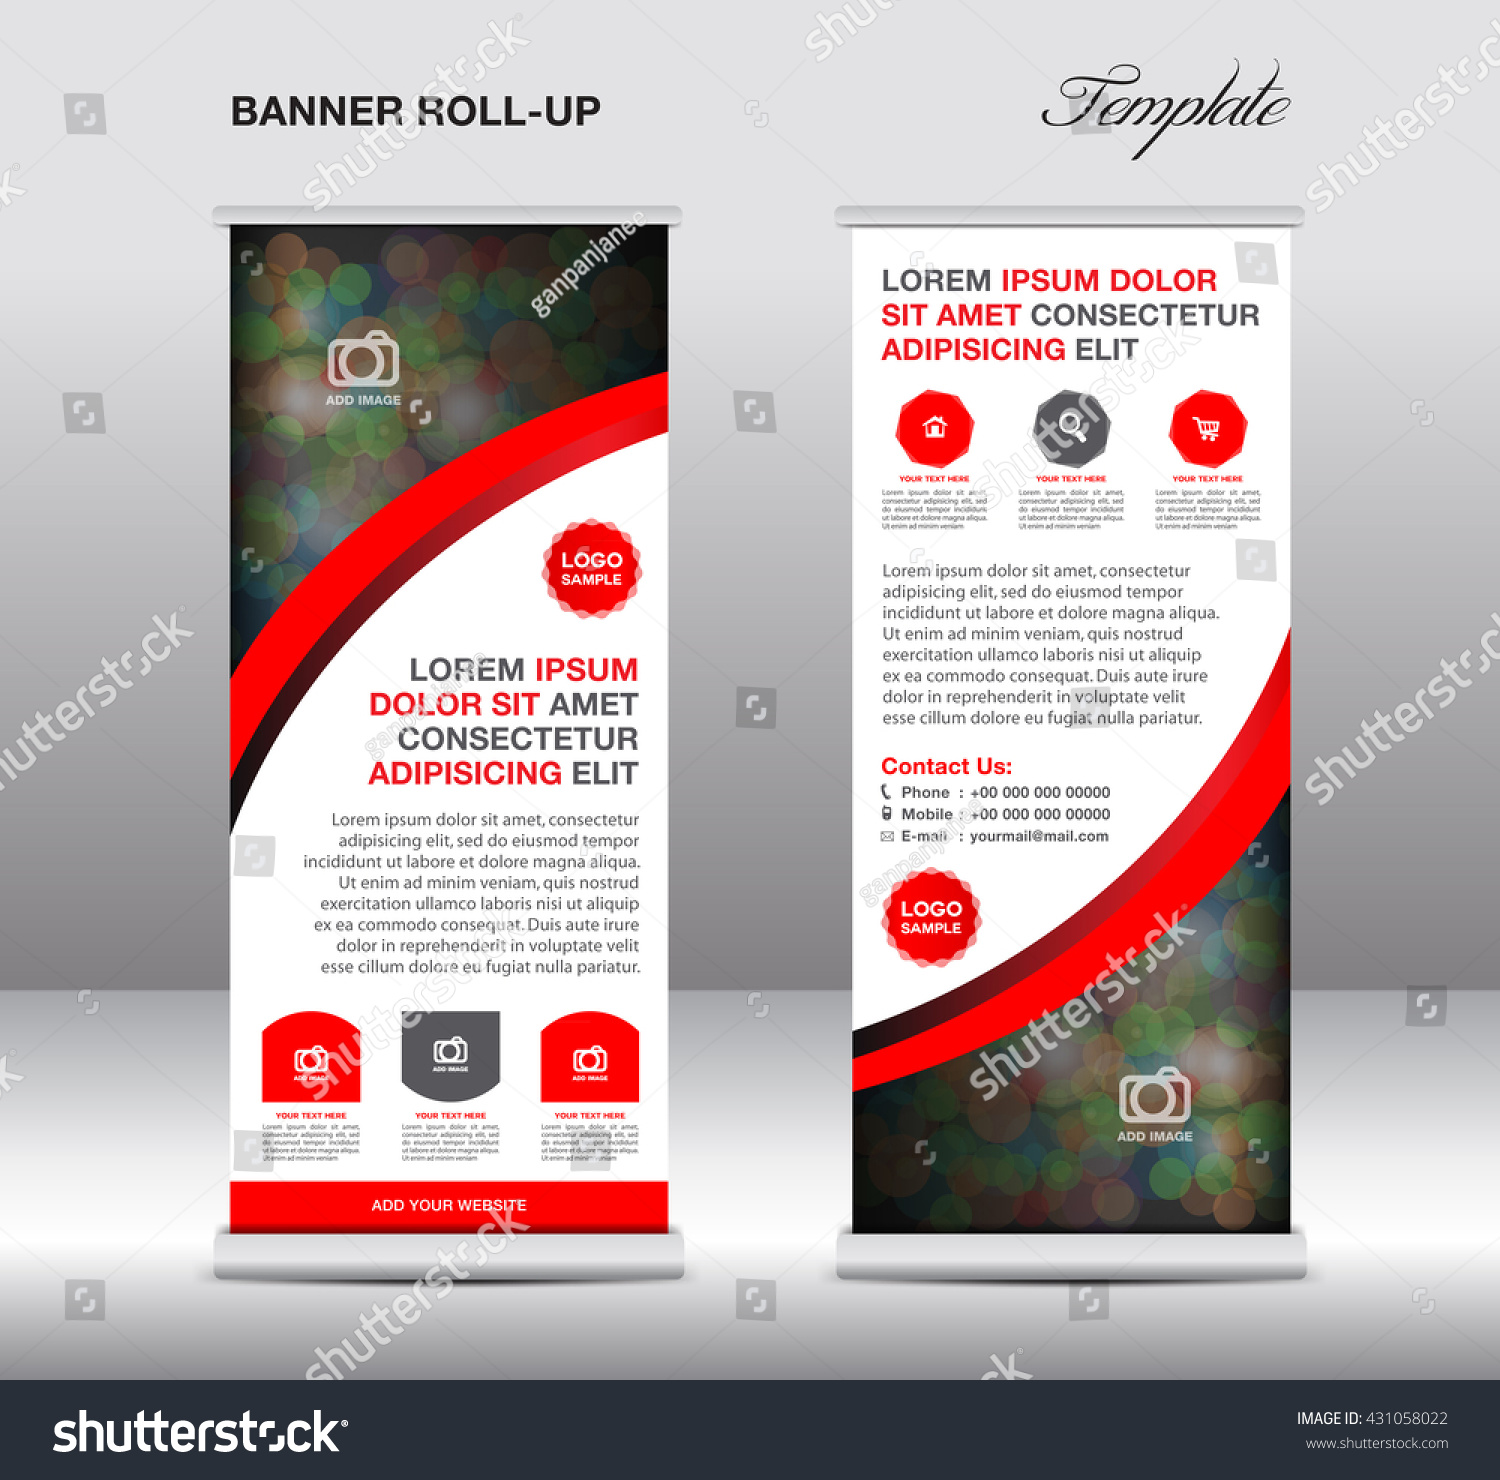 roll up banner stand template stand design advertisement flyer red roll up banner stand template vector illustration advertisement display flyer design